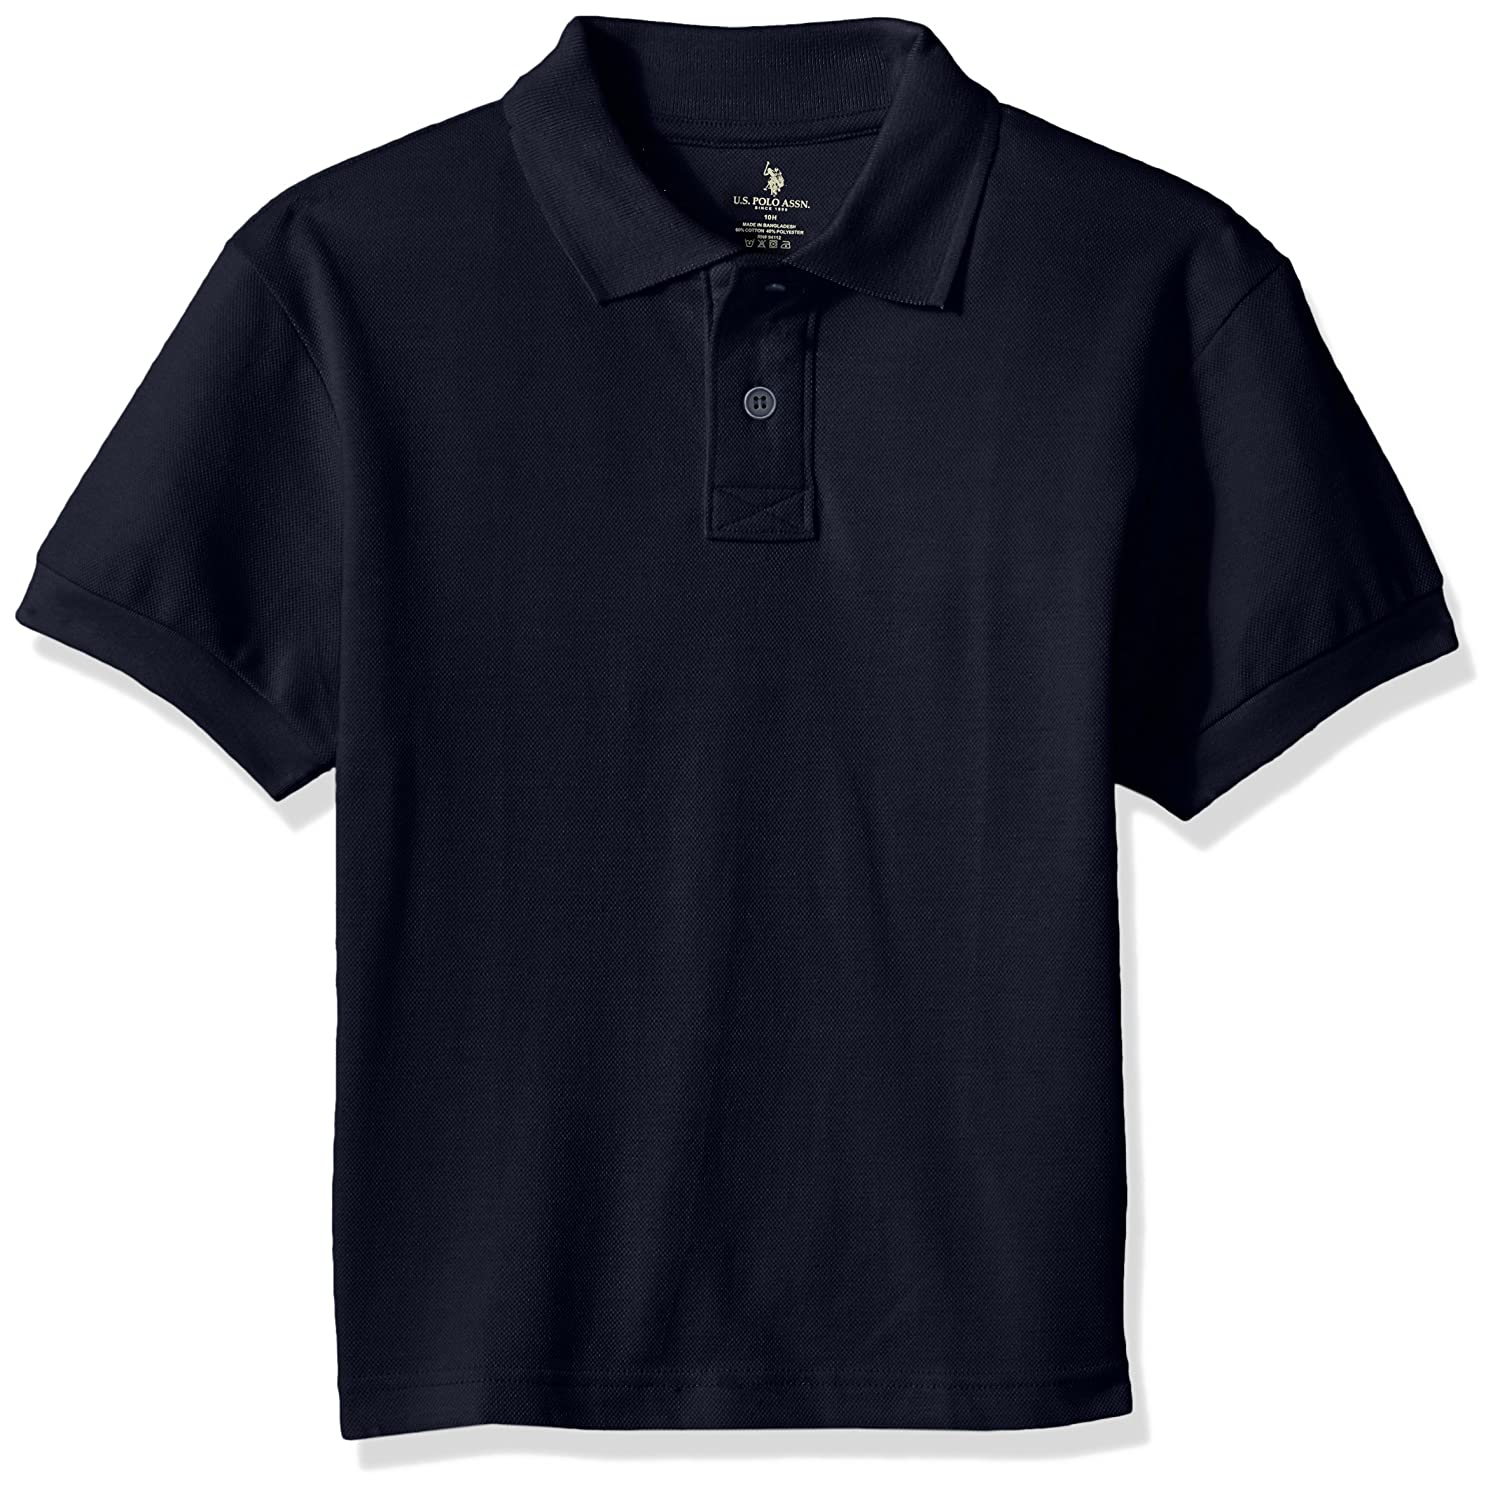 U.S. Polo Assn. Boys' Polo Shirt (More Styles Available), Classic Navy, 14H T96617NA